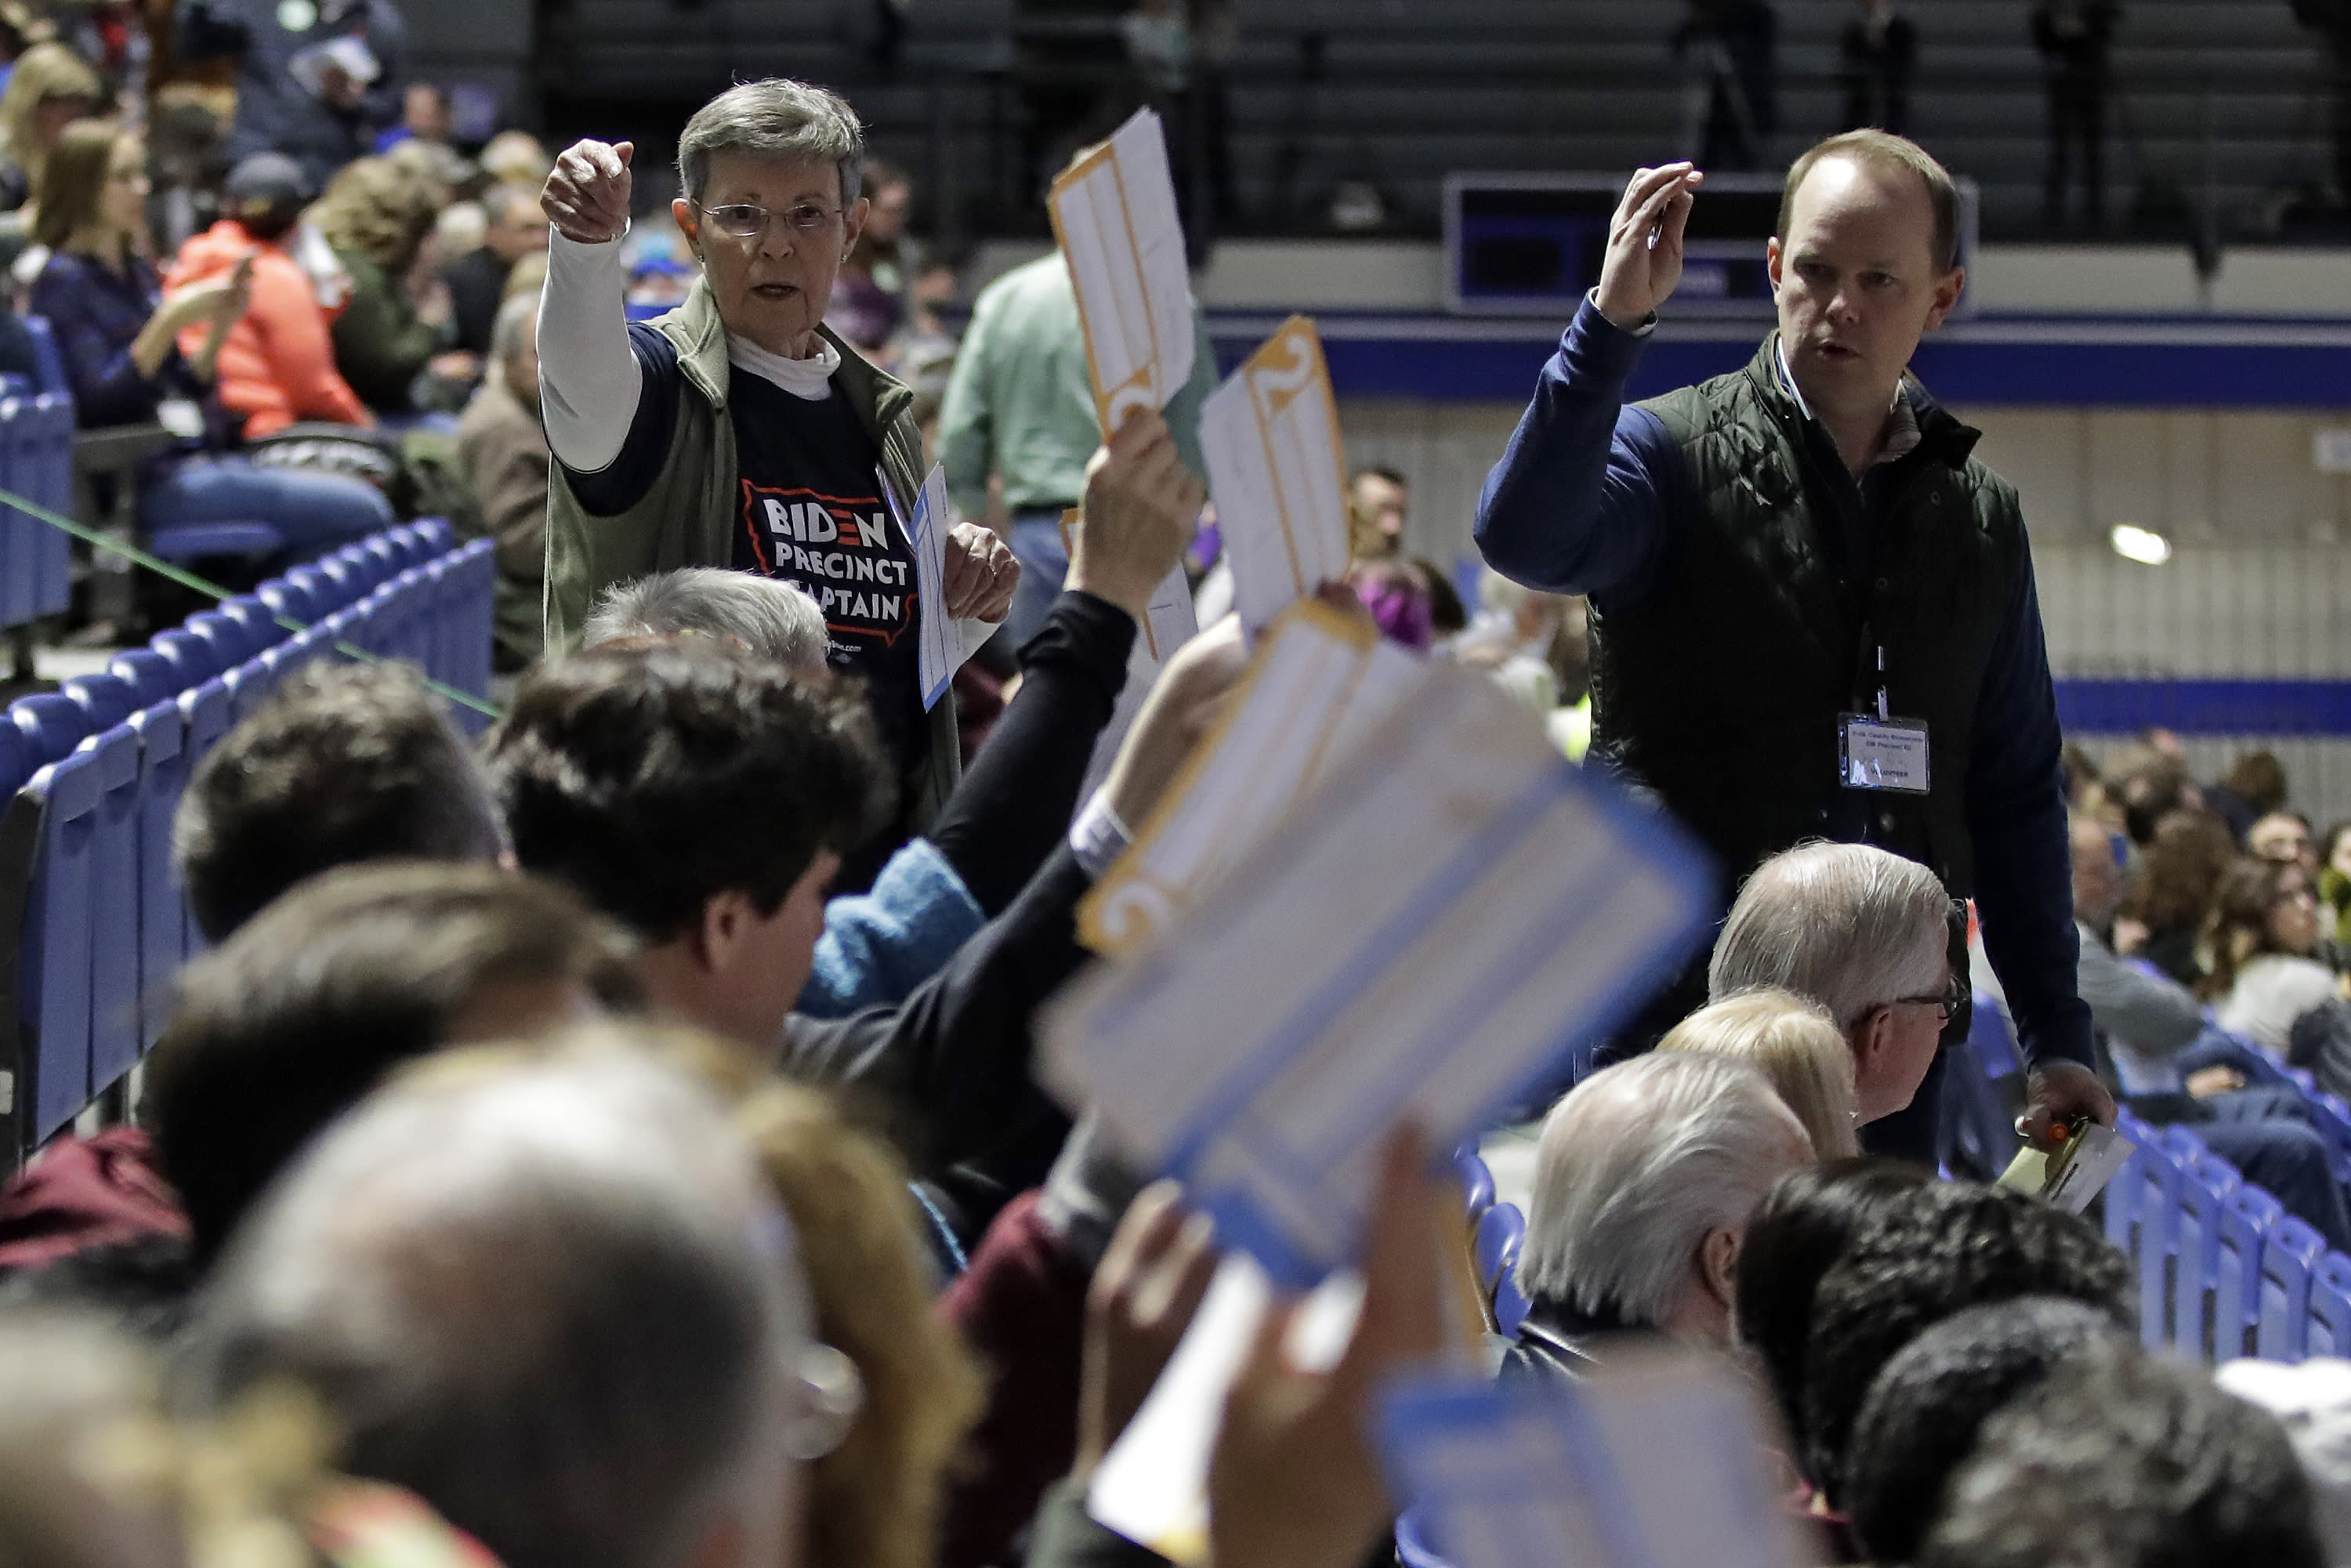 Candidates Give Victory Speeches in Iowa As Results Are Delayed